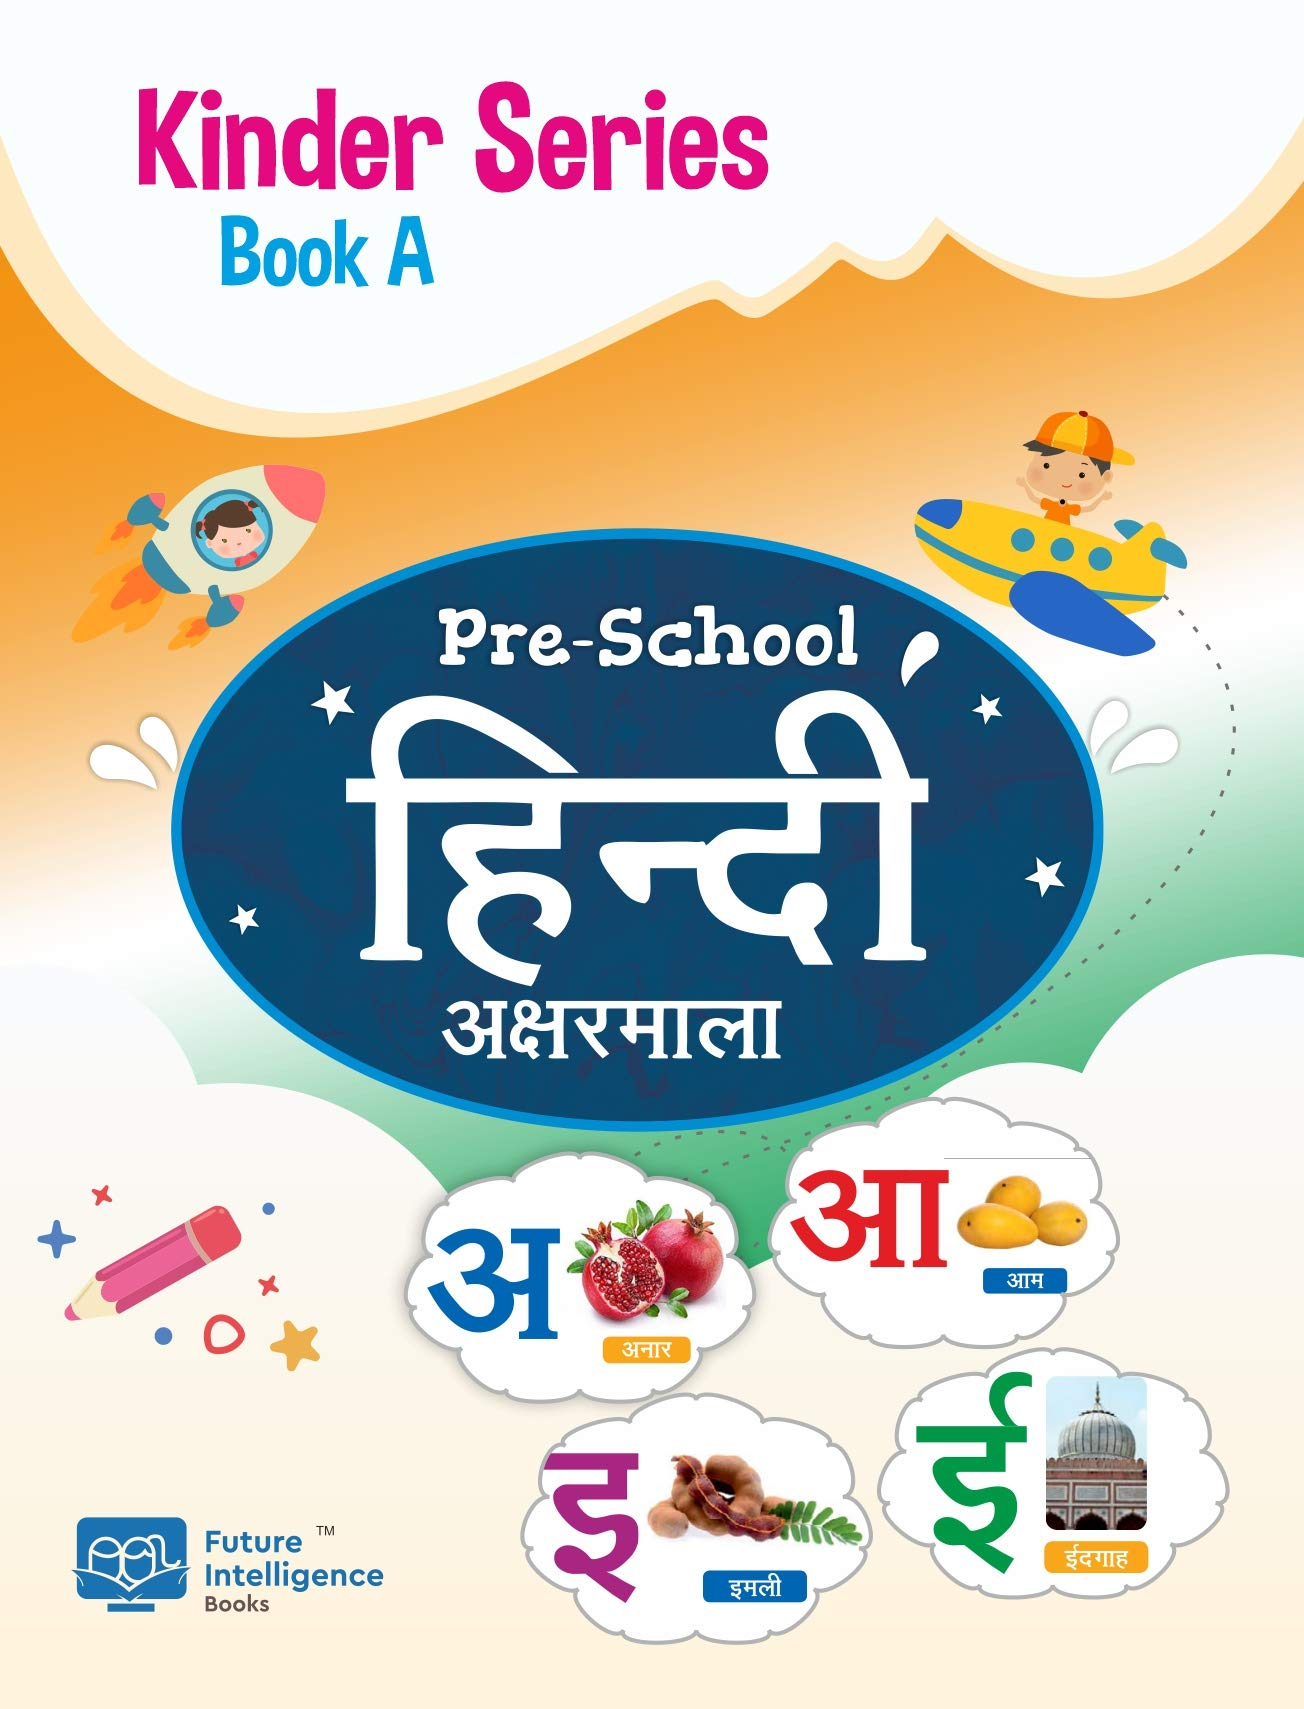 Hindi Aksharamala / Sulekh Hindi Book / Hindi Alphabets for Kids, Words with Pictures in Hindi Vegetables, Fruits, Flowers, Birds, Vehicles [44 Pages] (3-6 Years)